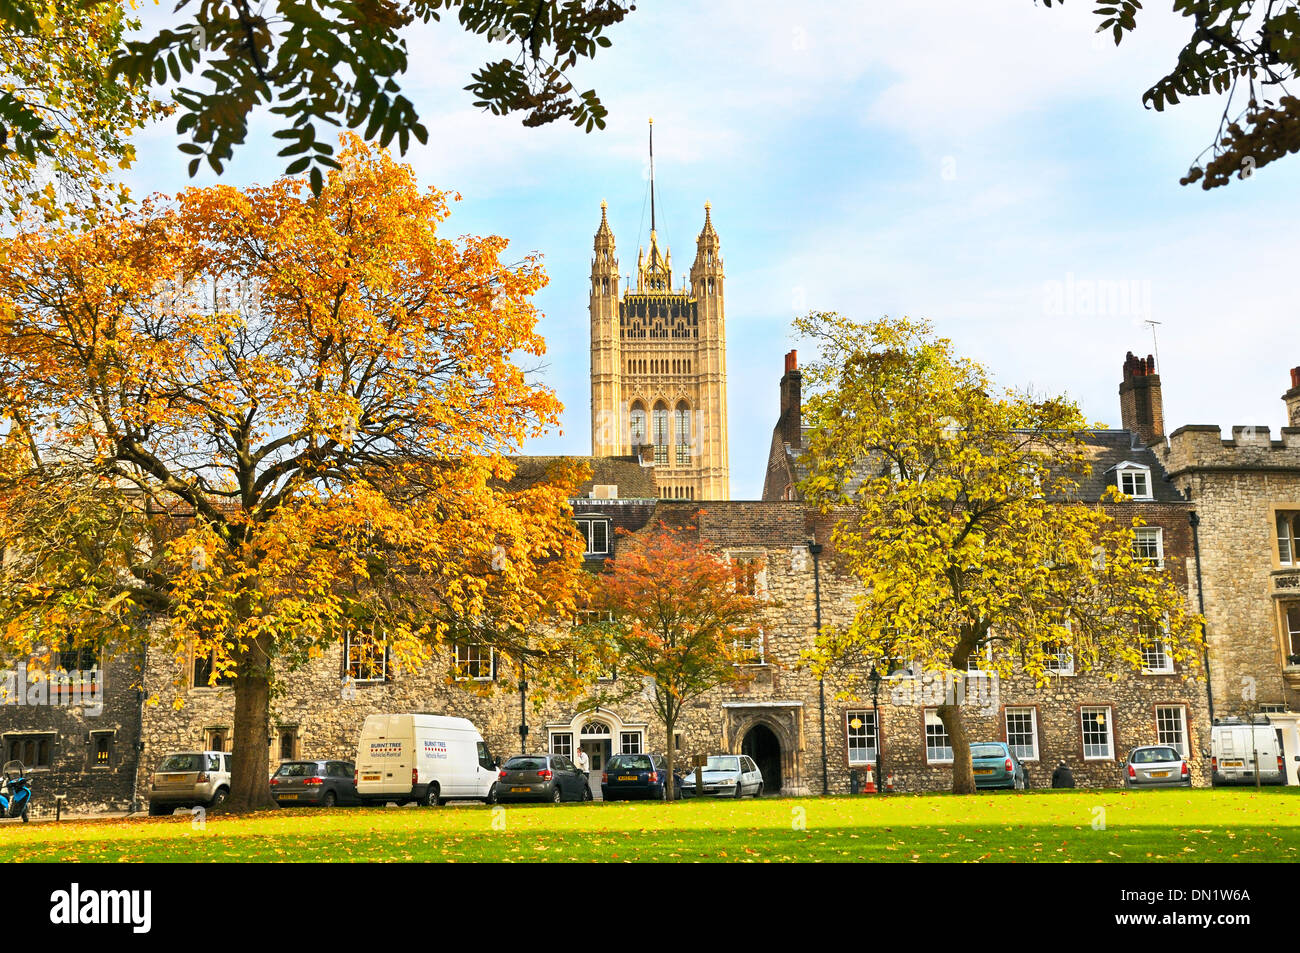 Victoria Tower at the Palace of Westminster seen from Dean's Yard, London, England, UK - Stock Image